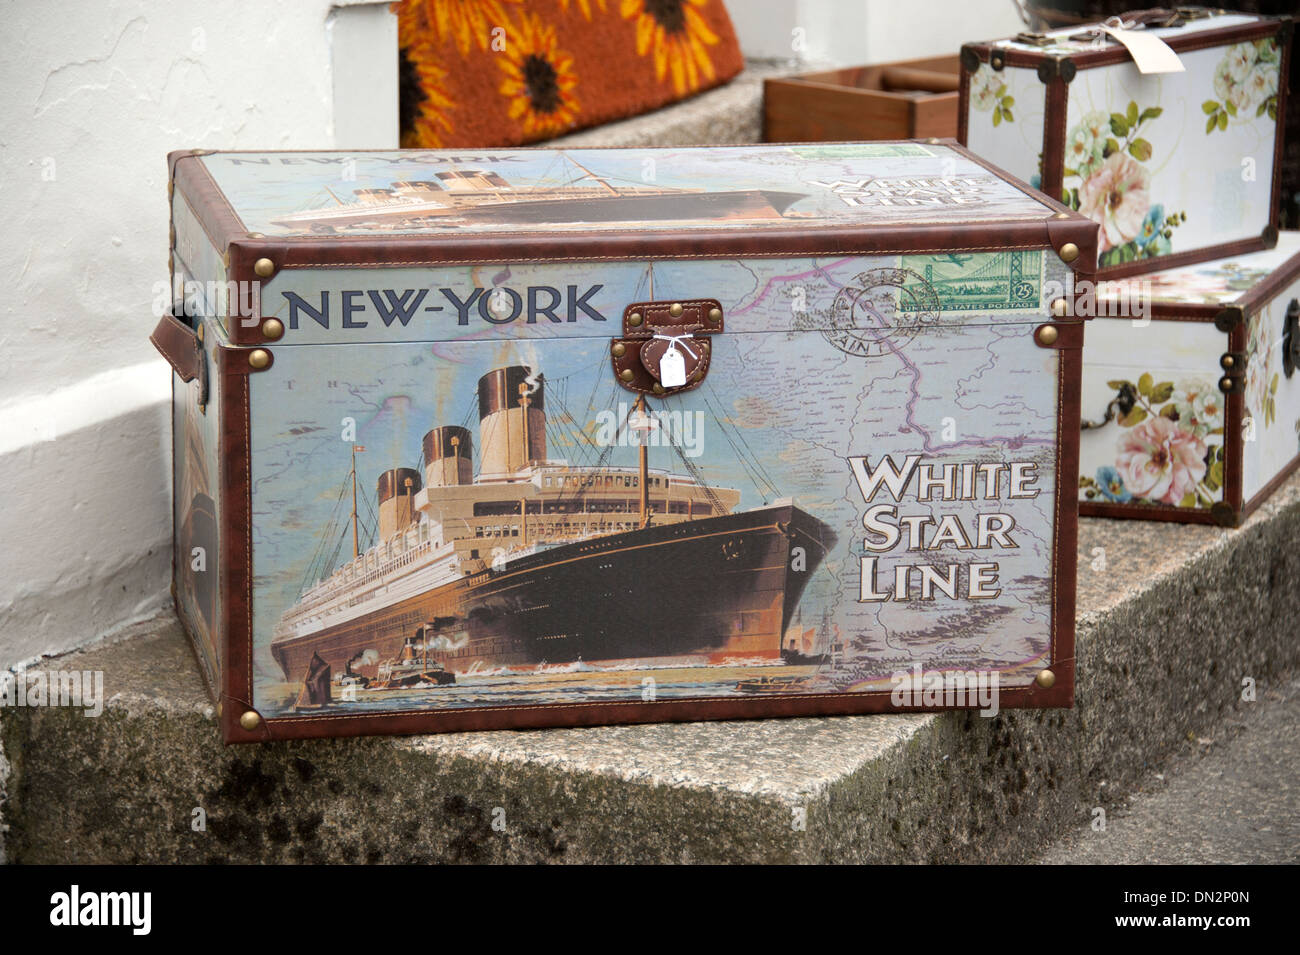 White Star Line New York Luggage Trunk Ship - Stock Image